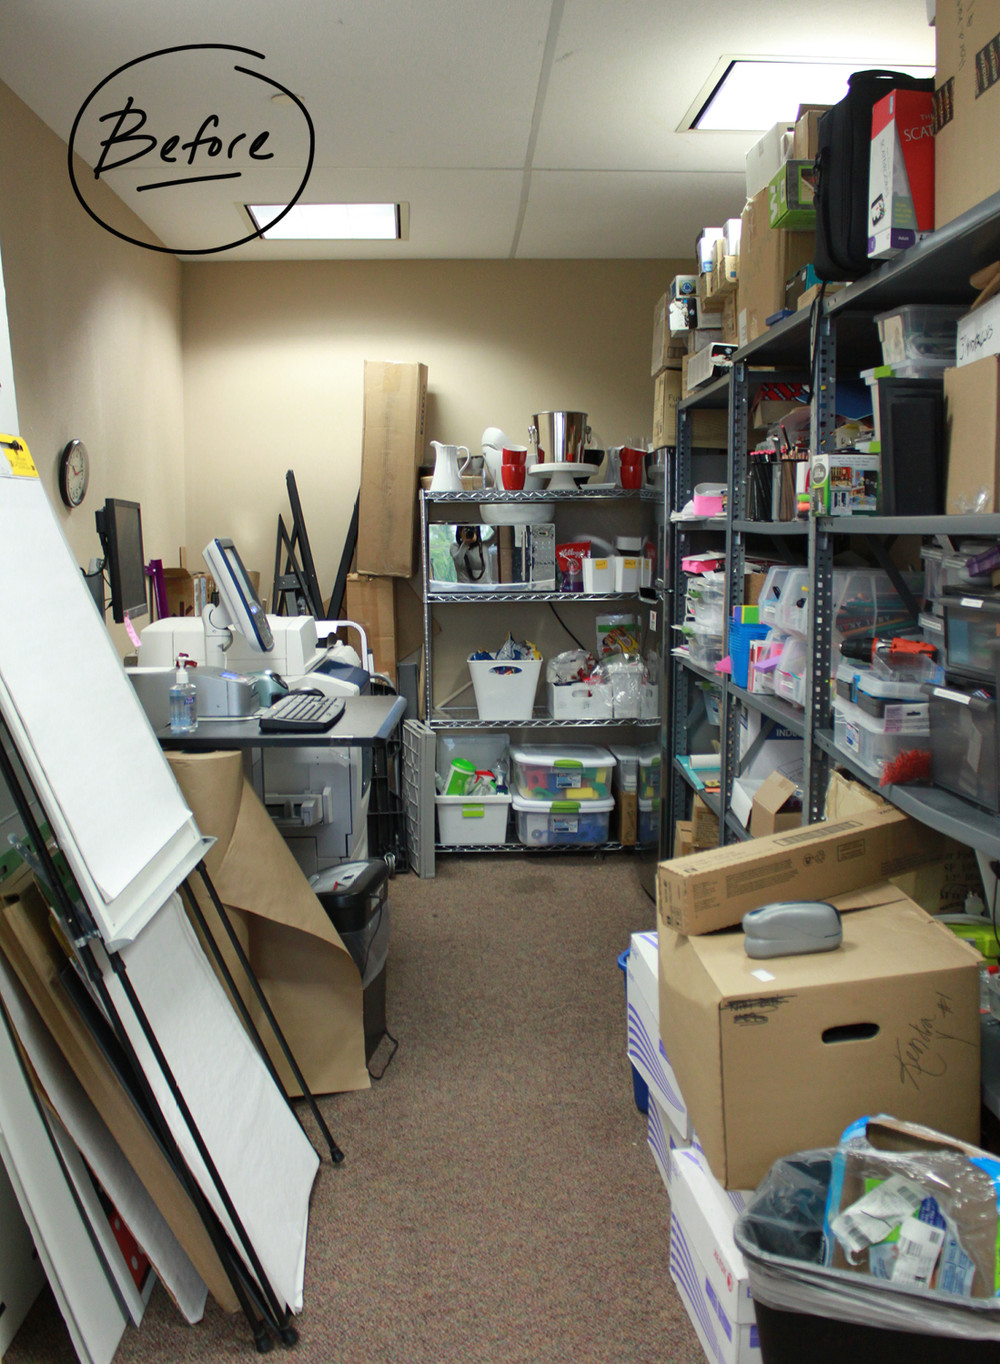 Before, The Teamu0027s Space Was Cluttered From Floor To Ceiling With No System  Of Order To Help The Team Locate Or Work With Anything In The Space.